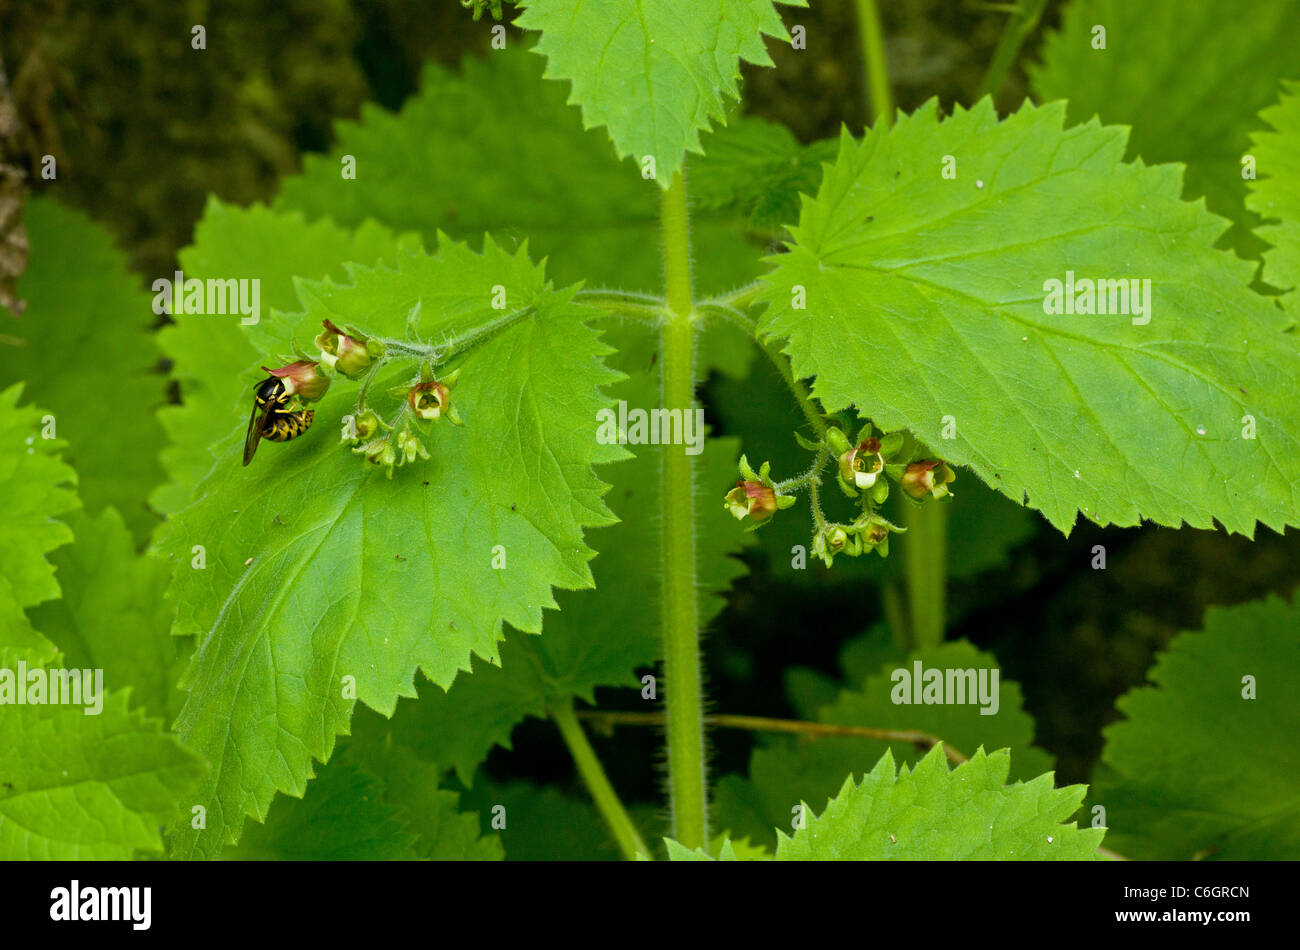 A figwort, Scrophularia aestivalis, with wasp pollinator visiting; Bulgaria - Stock Image